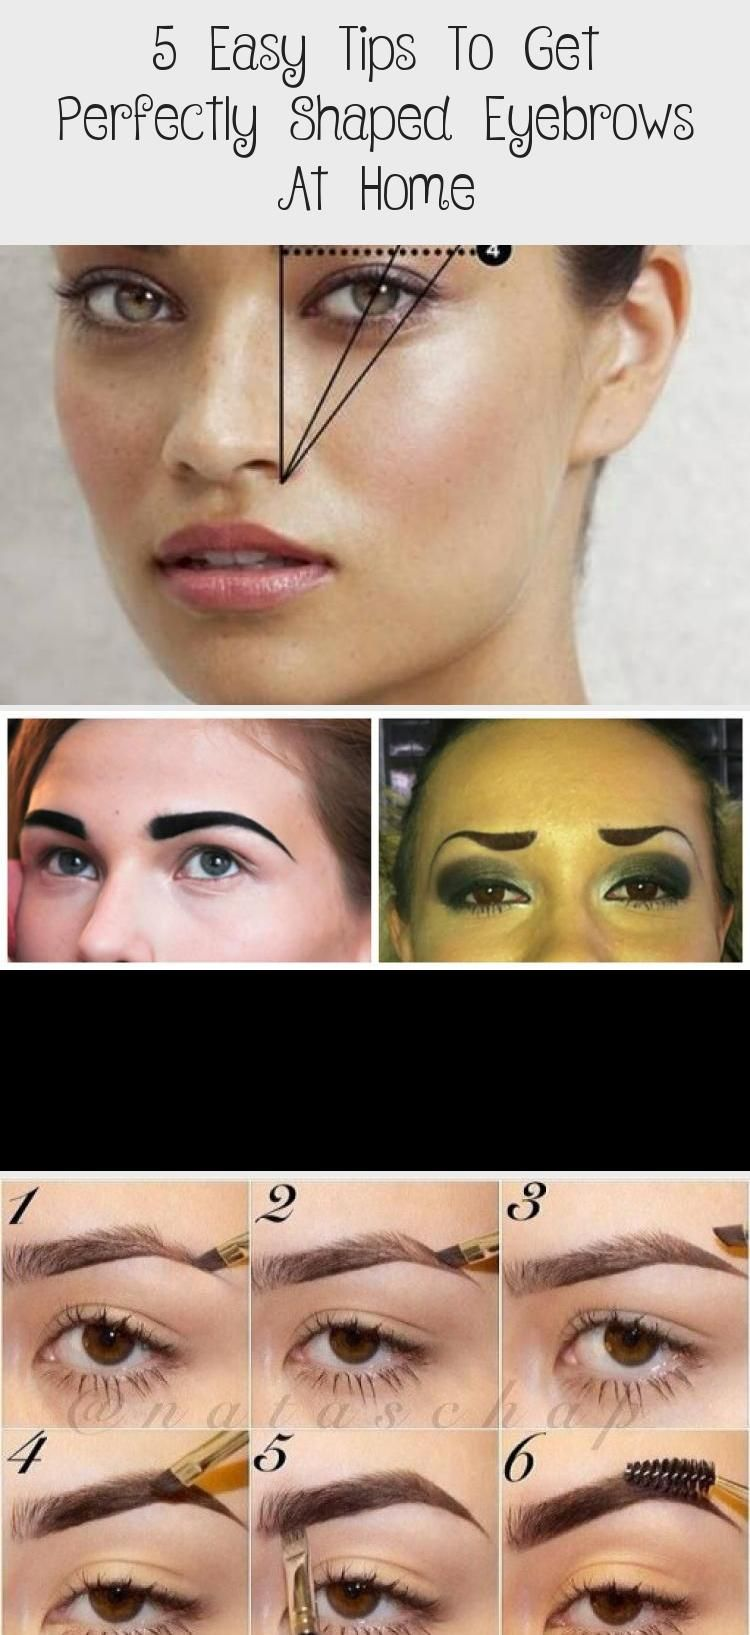 5 Easy Tips To Get Perfectly Shaped Eyebrows At Home ...